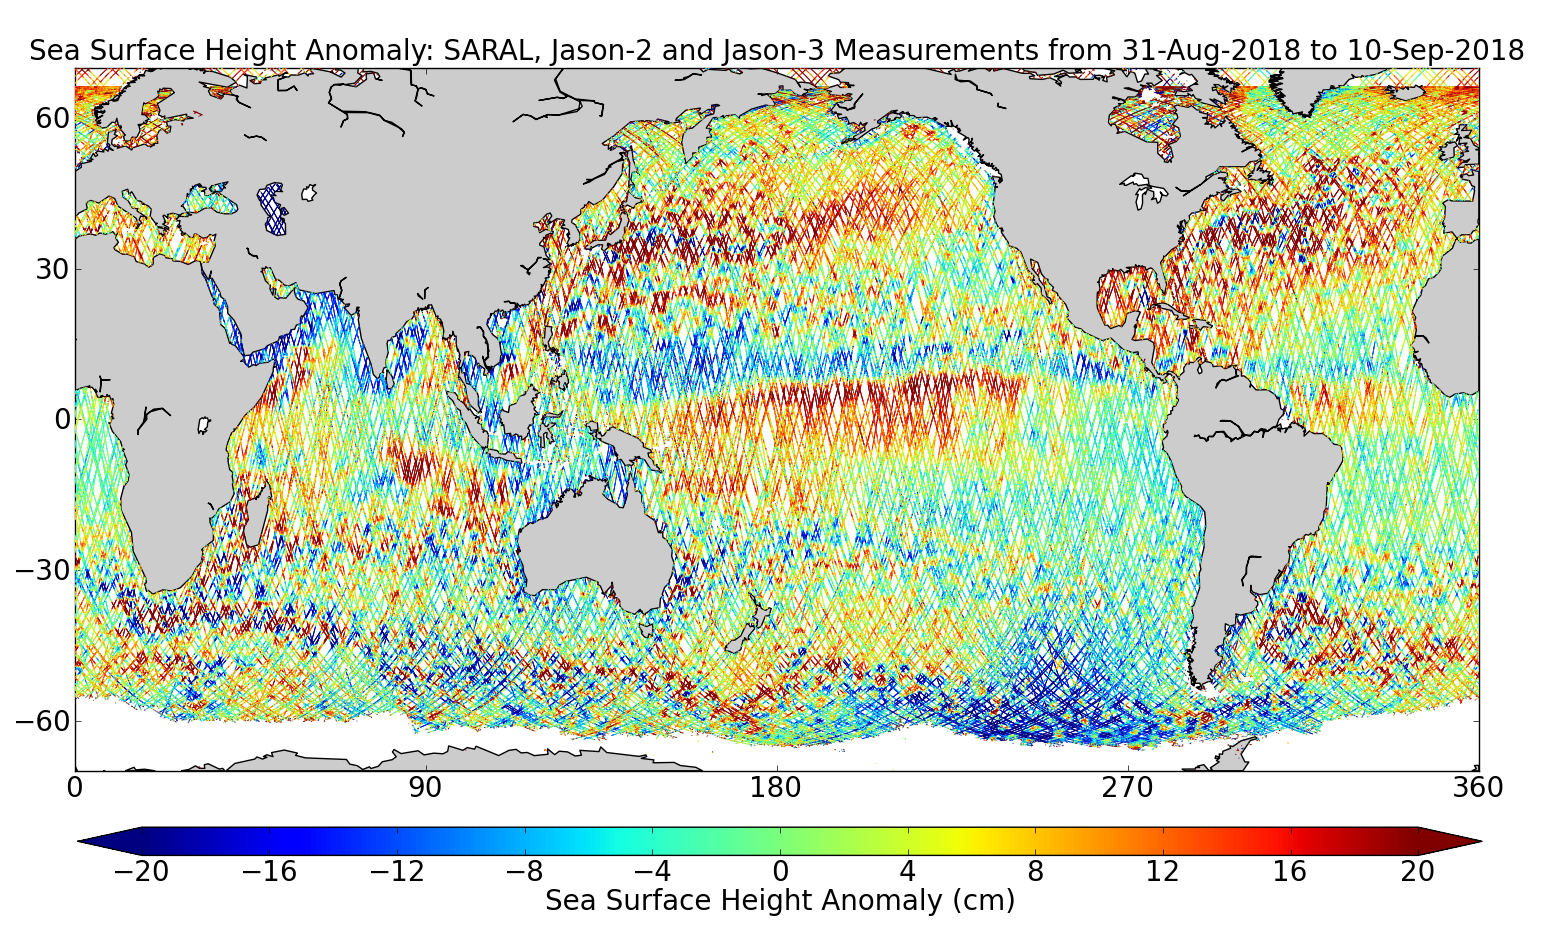 Sea Surface Height Anomaly: SARAL, Jason-2 and Jason-3 Measurements from 31-Aug-2018 to 10-Sep-2018